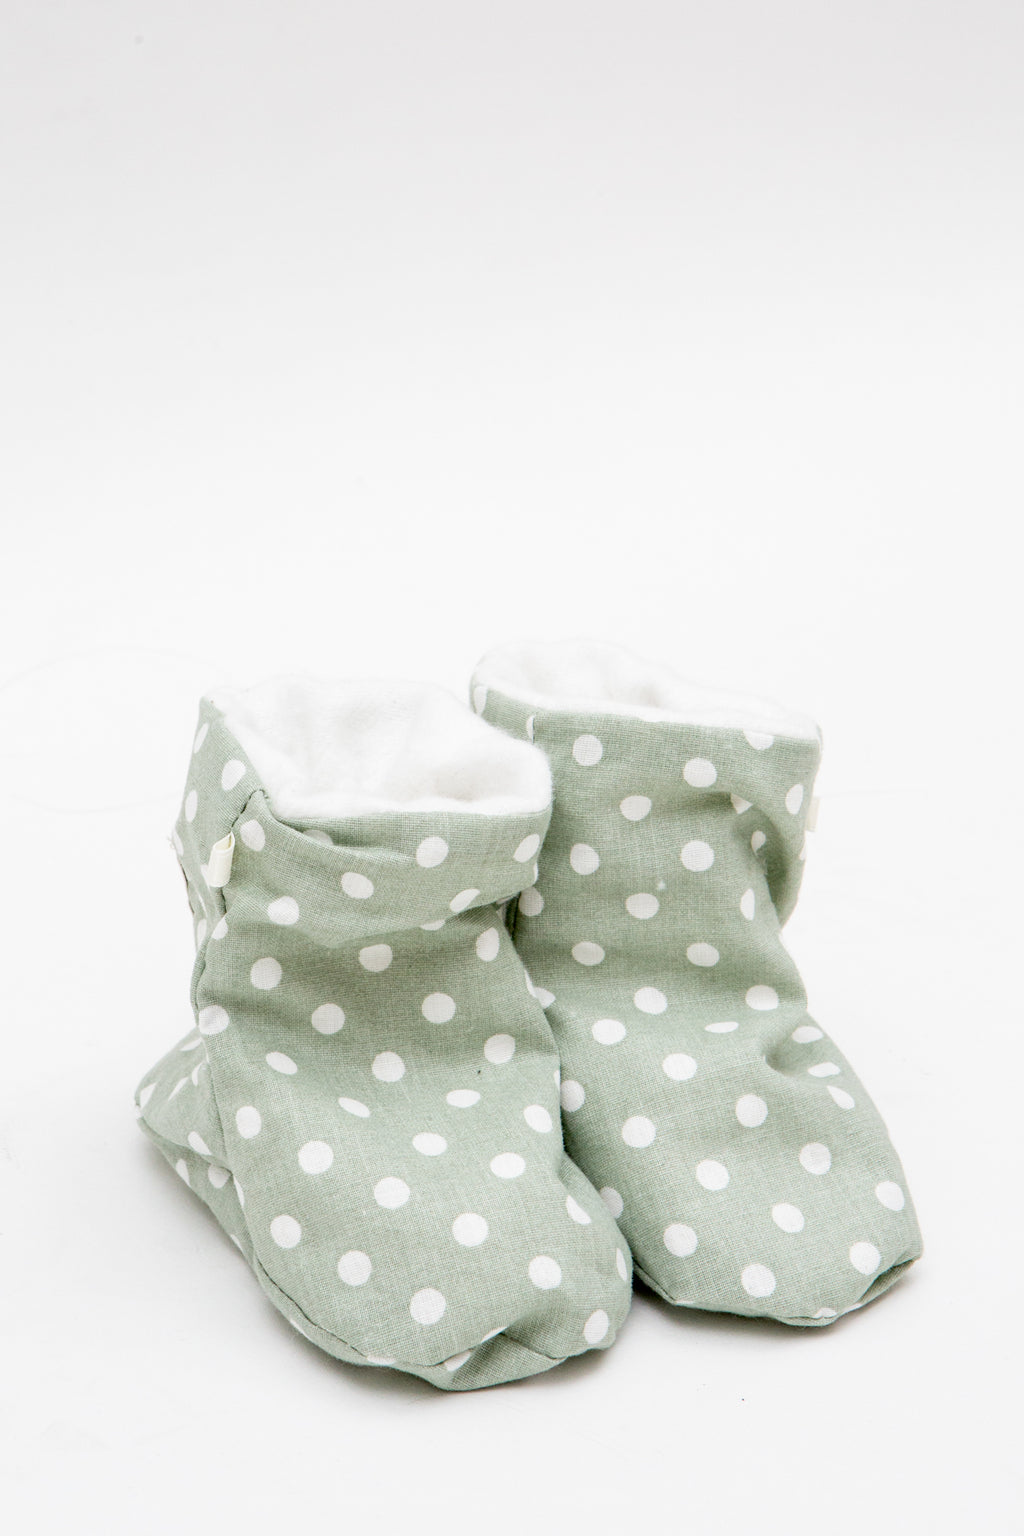 BABY SHOES * MINT POLKA